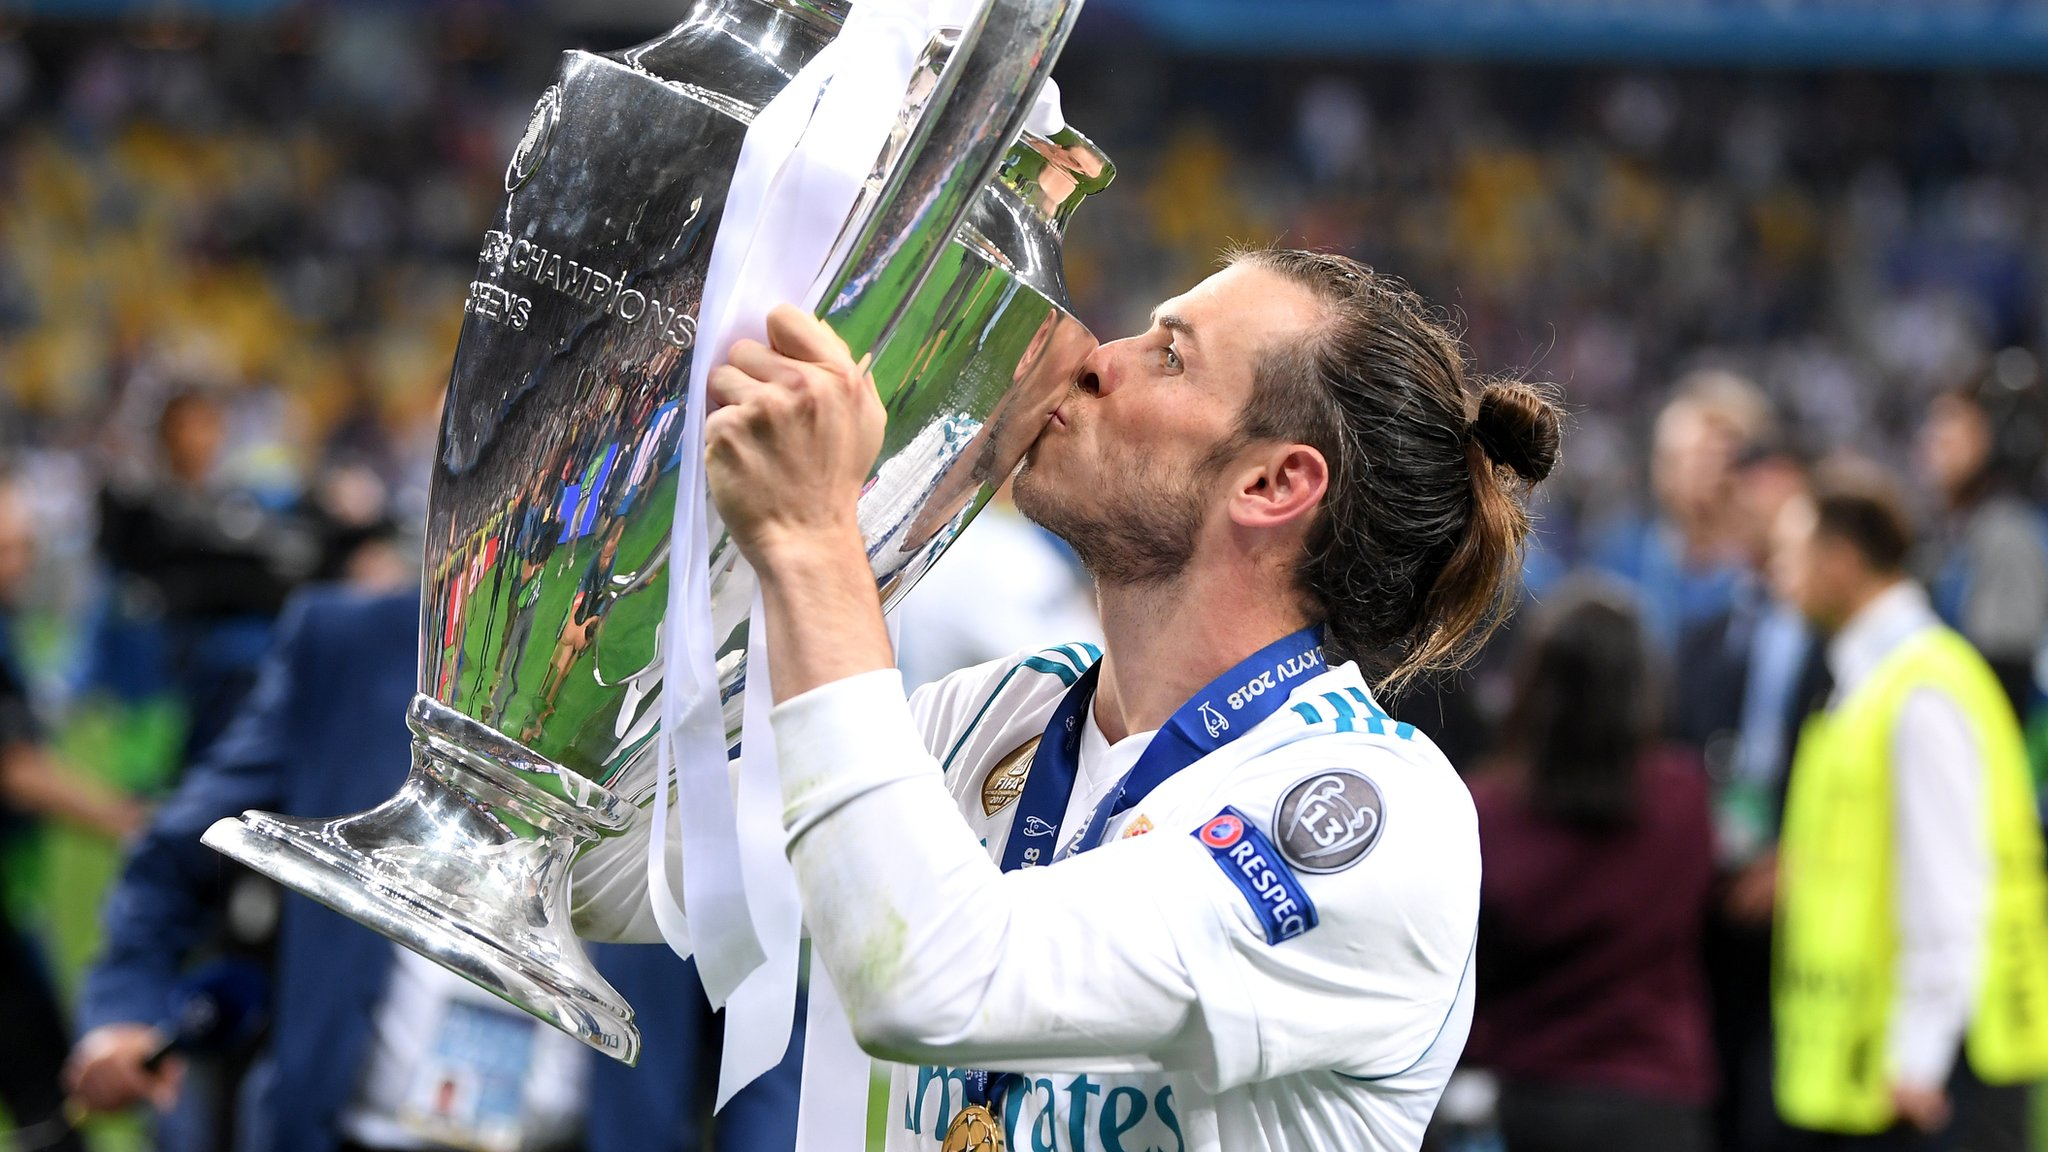 Champions League hero Bale to have talks about Real Madrid future